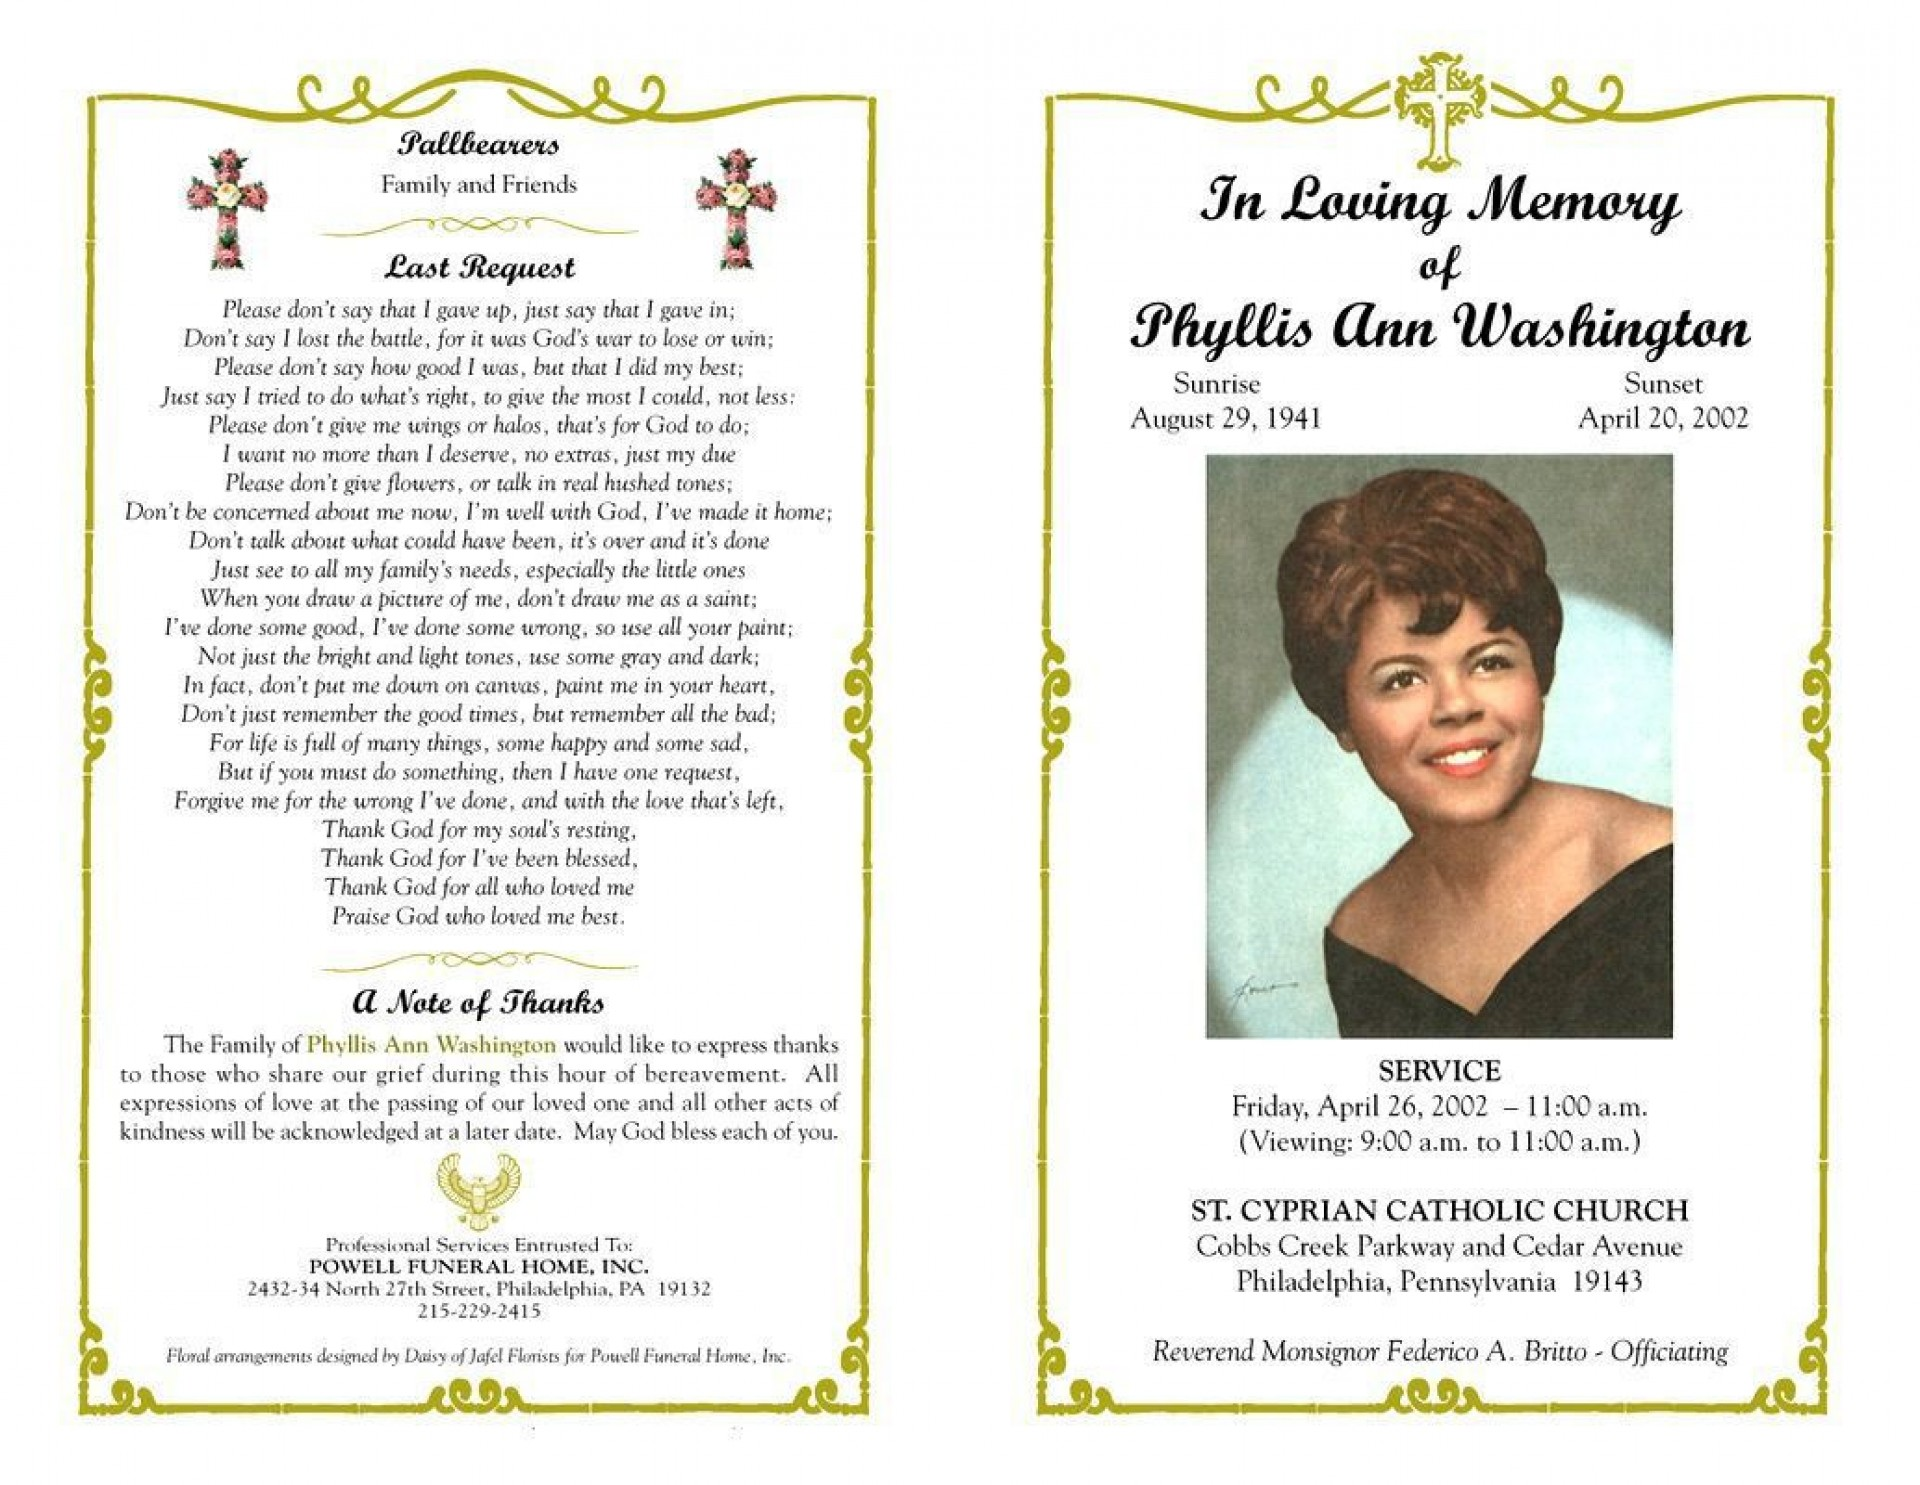 005 Frightening Template For Funeral Program Free High Resolution  Printable Download On Word Editable Pdf1920